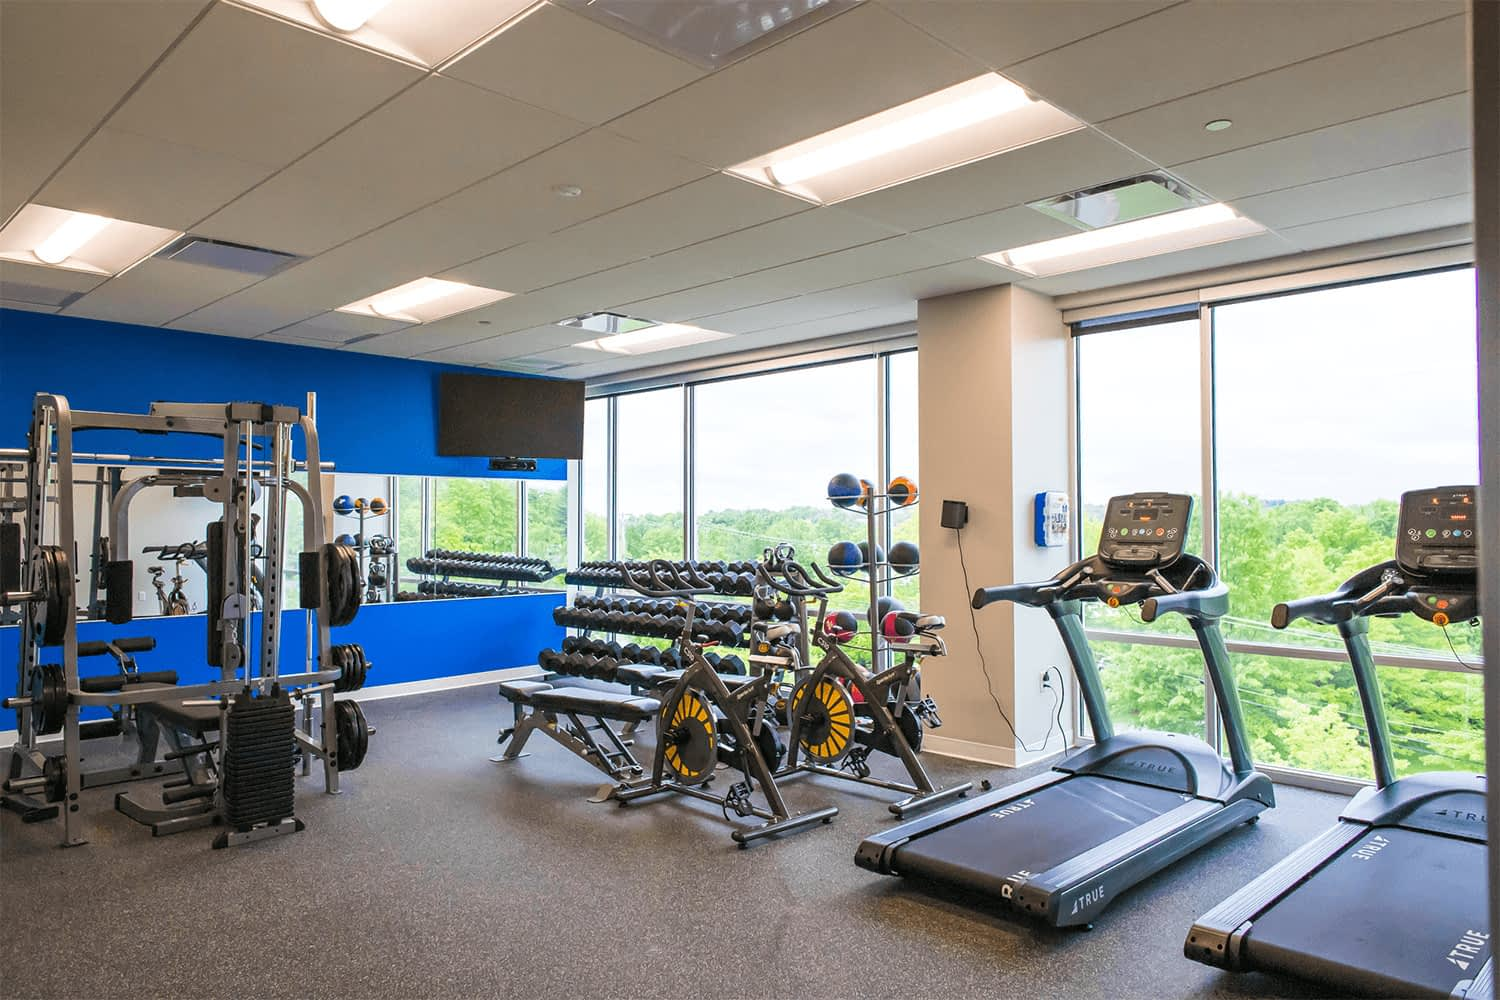 gym with treadmills, and weights, with floor-to-ceiling windows